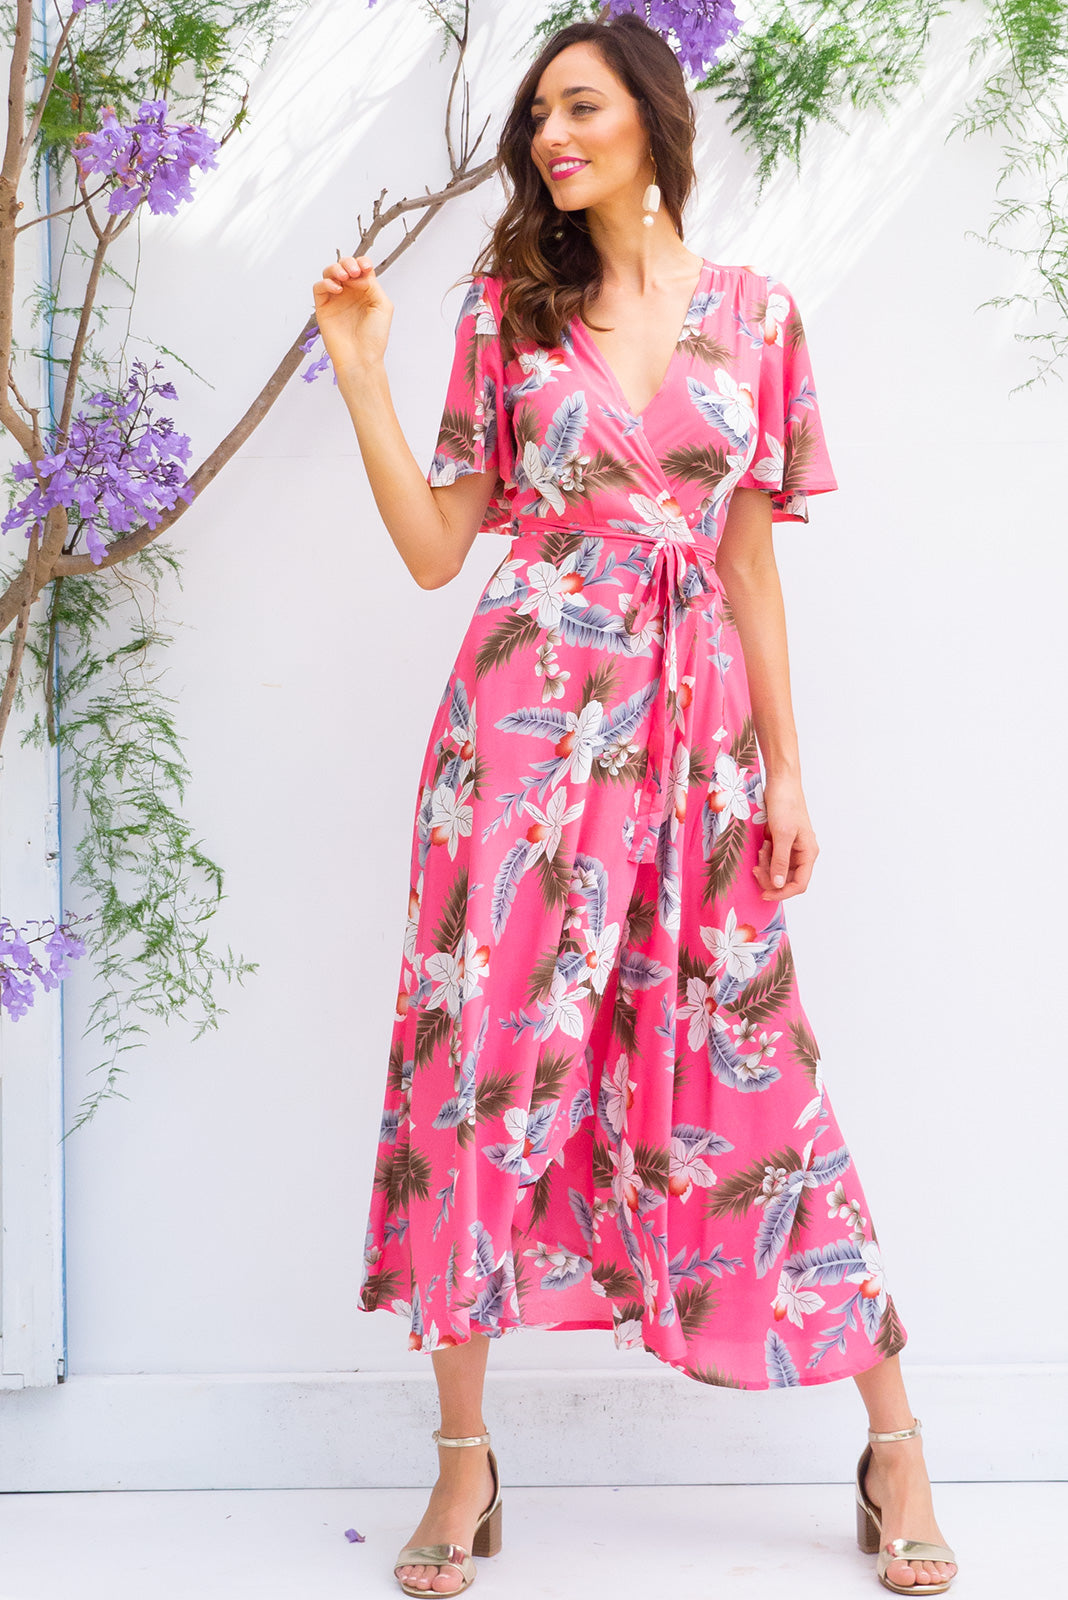 Penny Watermelon Pink Aloha Maxi Wrap dress with flutter sleeves in a candy pink tropical inspired floral print on 100% rayon